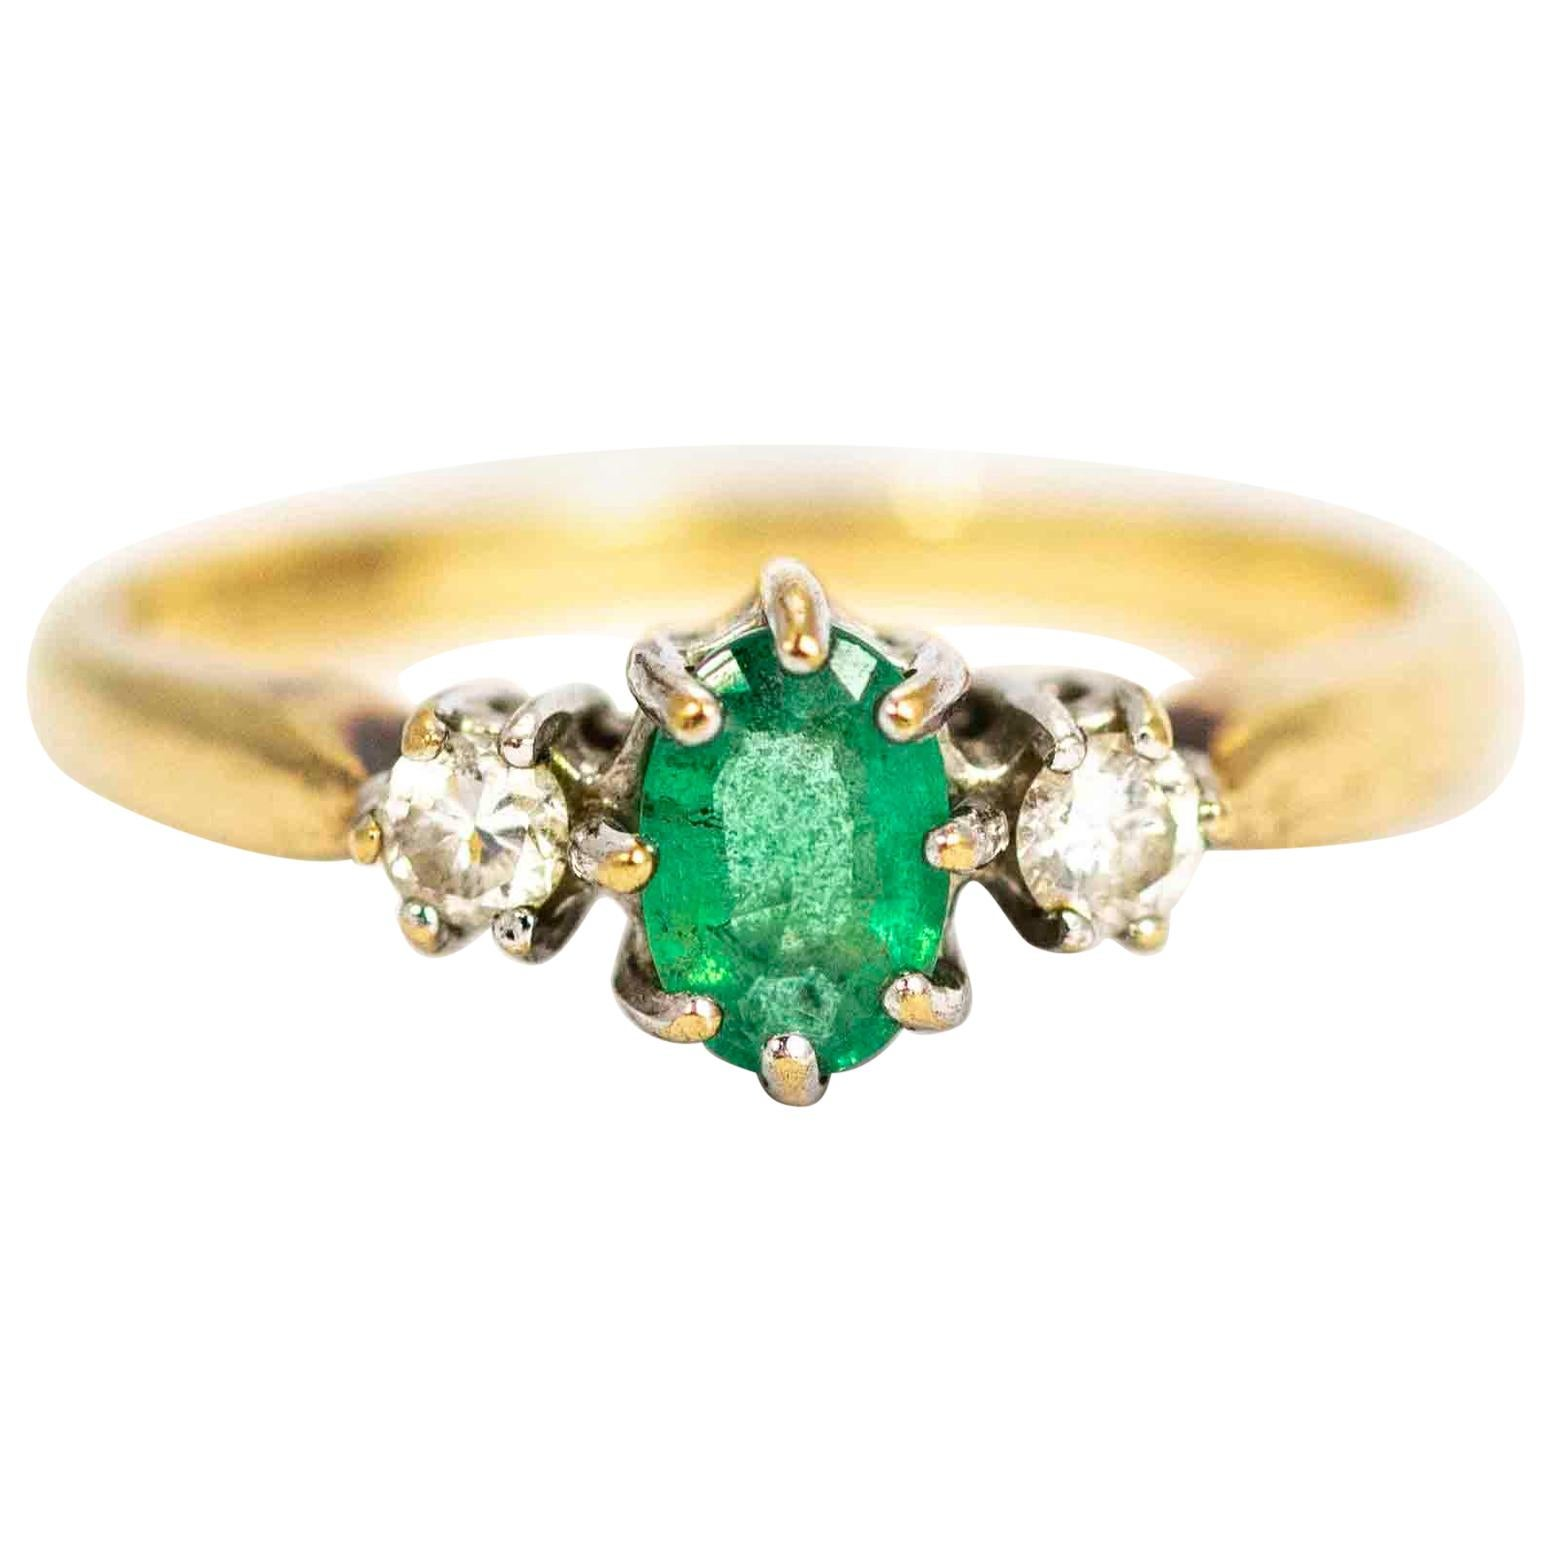 Antique 9k Gold Rings - 515 For Sale at 1stdibs